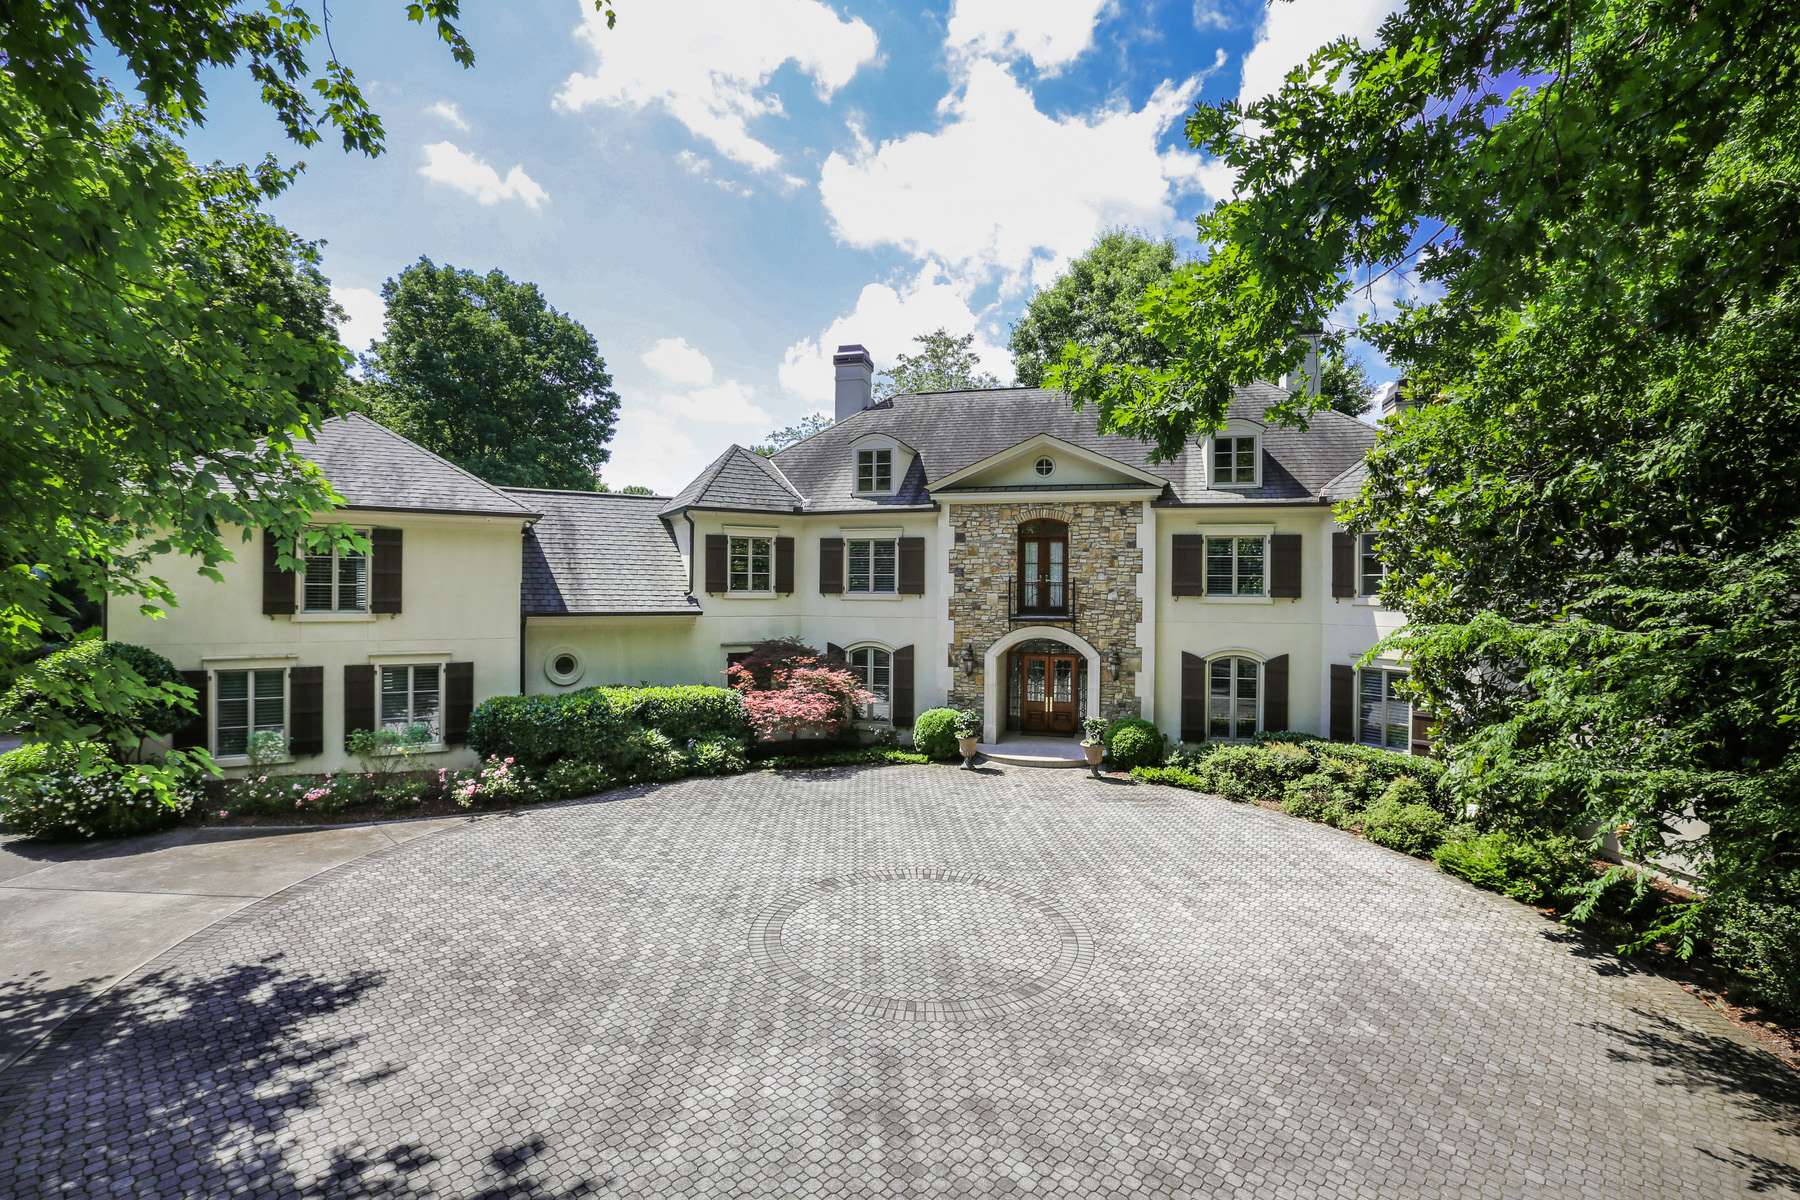 Single Family Homes for Sale at Custom Estate Sits on 2.6+/- Acres in Sandy Springs 1370 Indian Trail Sandy Springs, Georgia 30327 United States